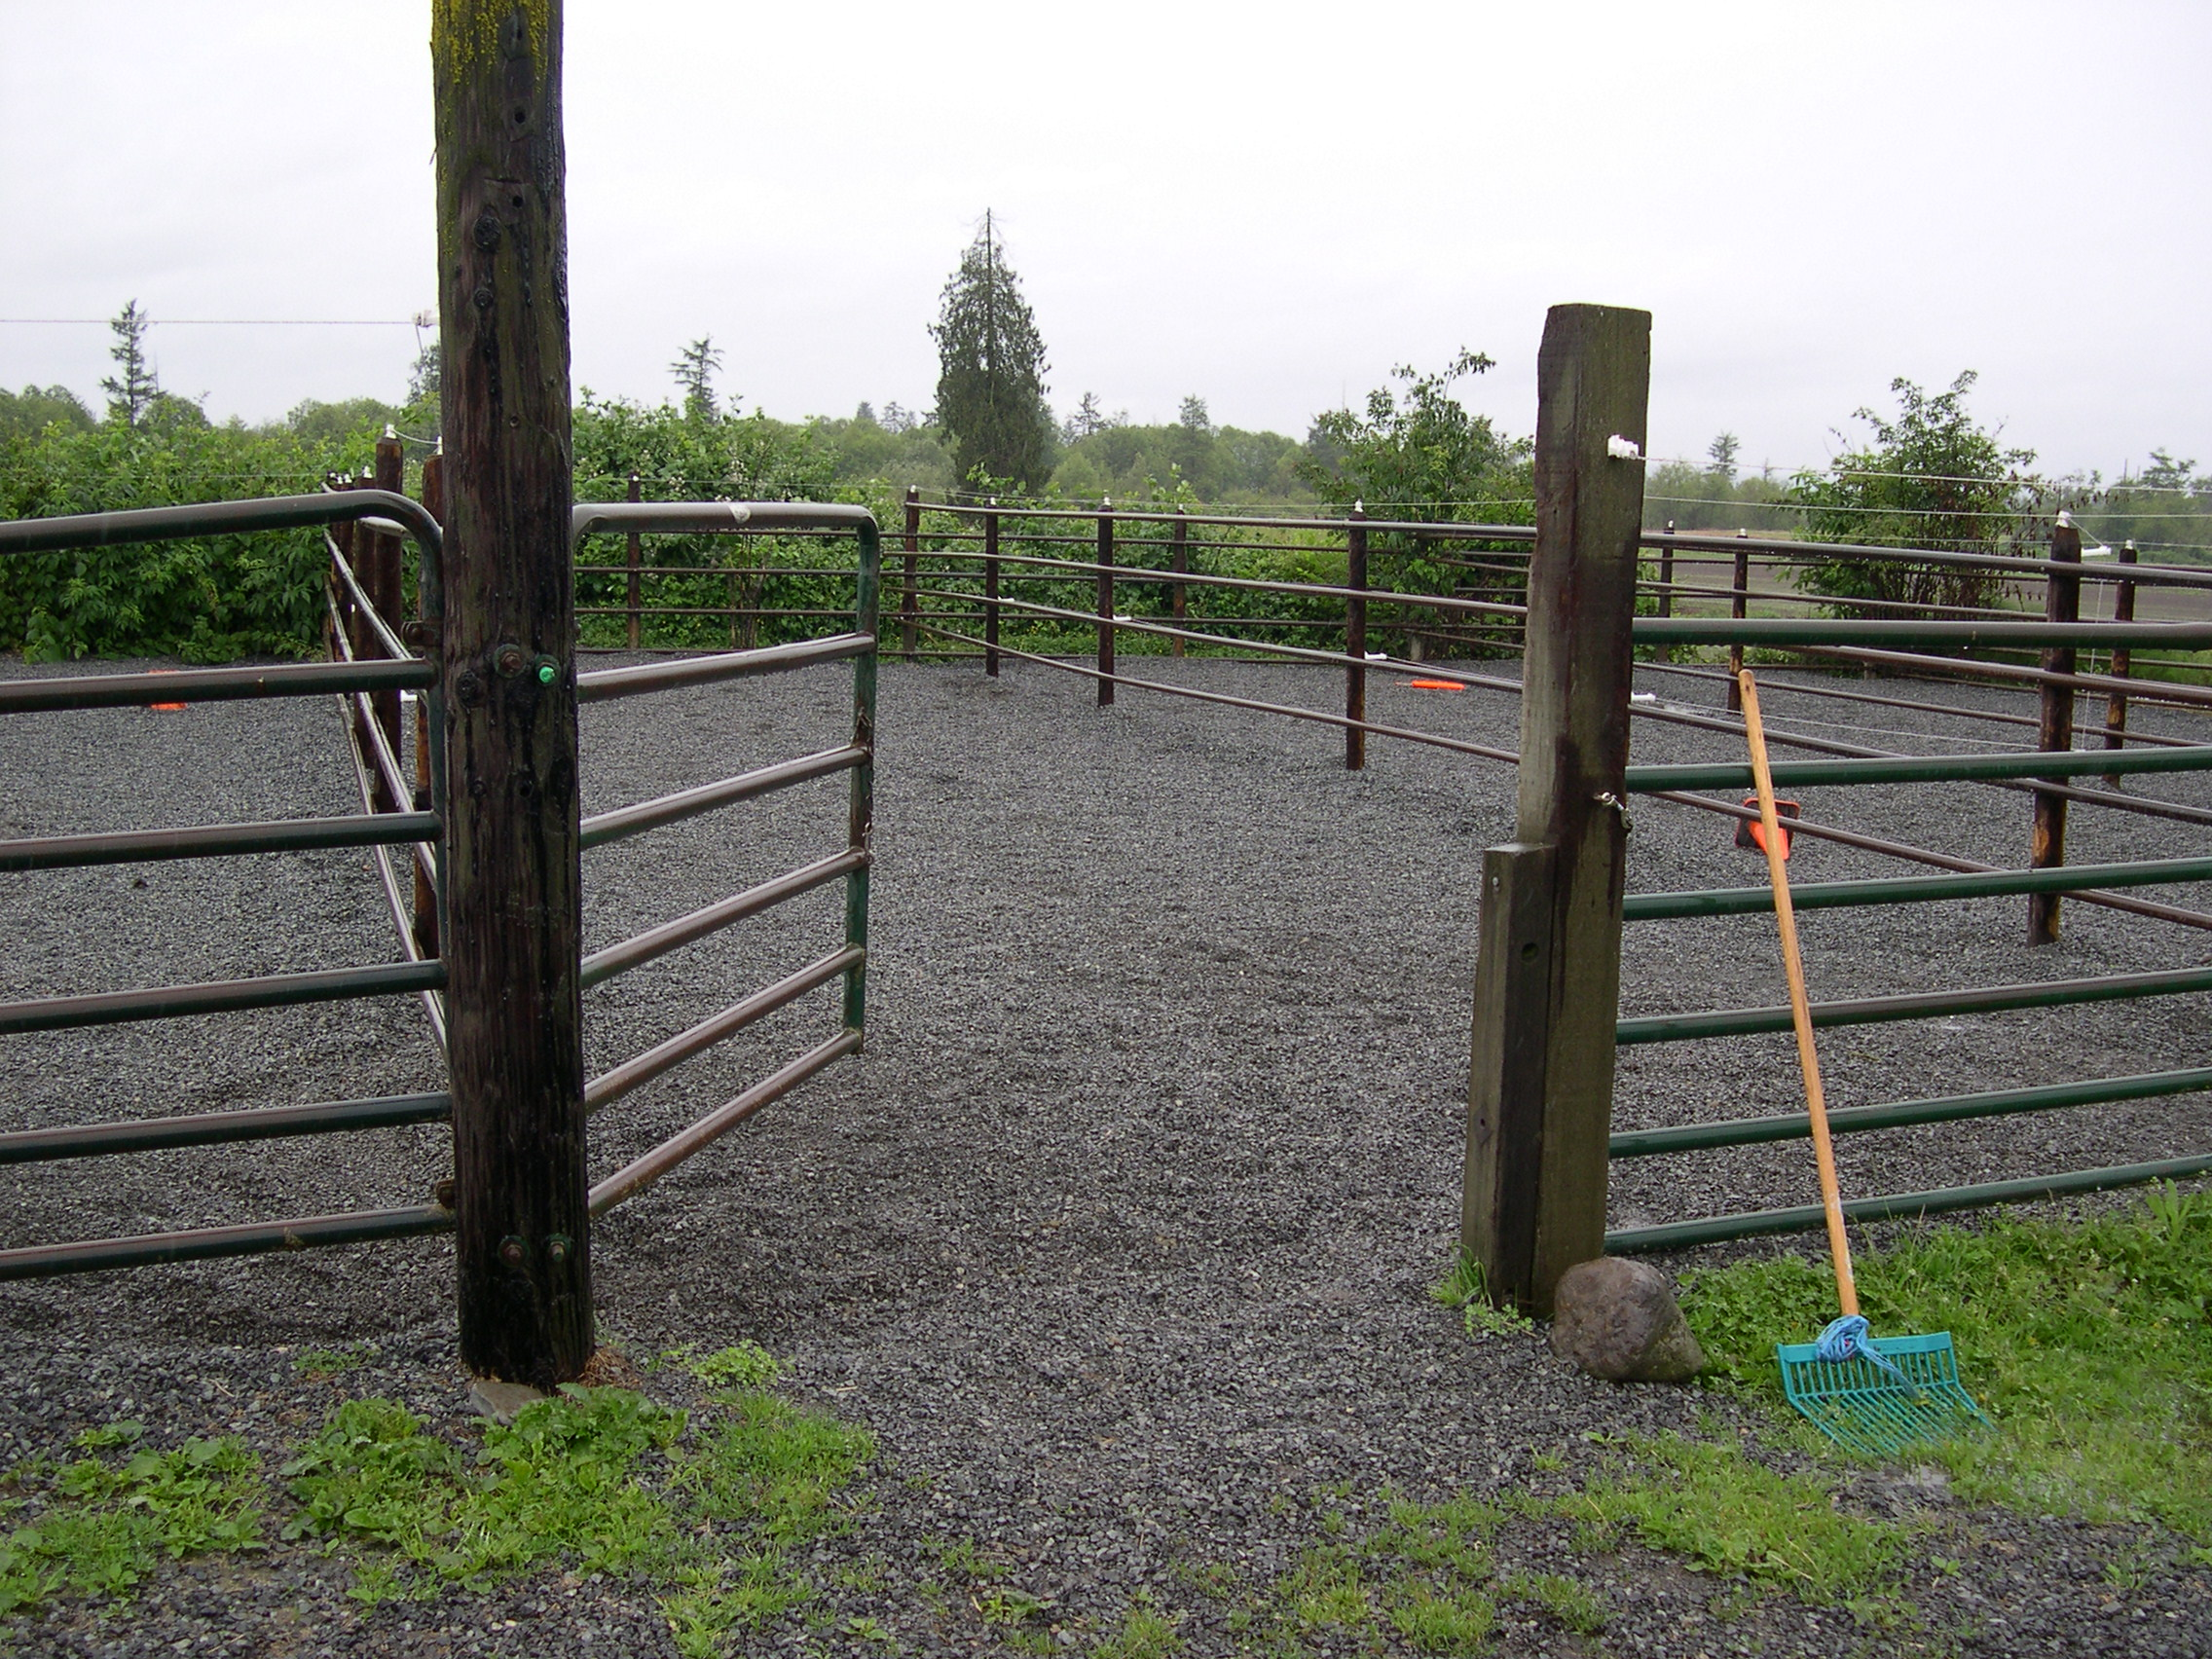 A heavy use area like the one above helps keep animals off soggy, wet pastures in the winter. This makes chores easier, protects their hooves and helps prevent compaction and over-use of pastures. Your pasture will recover much more quickly in the spring.